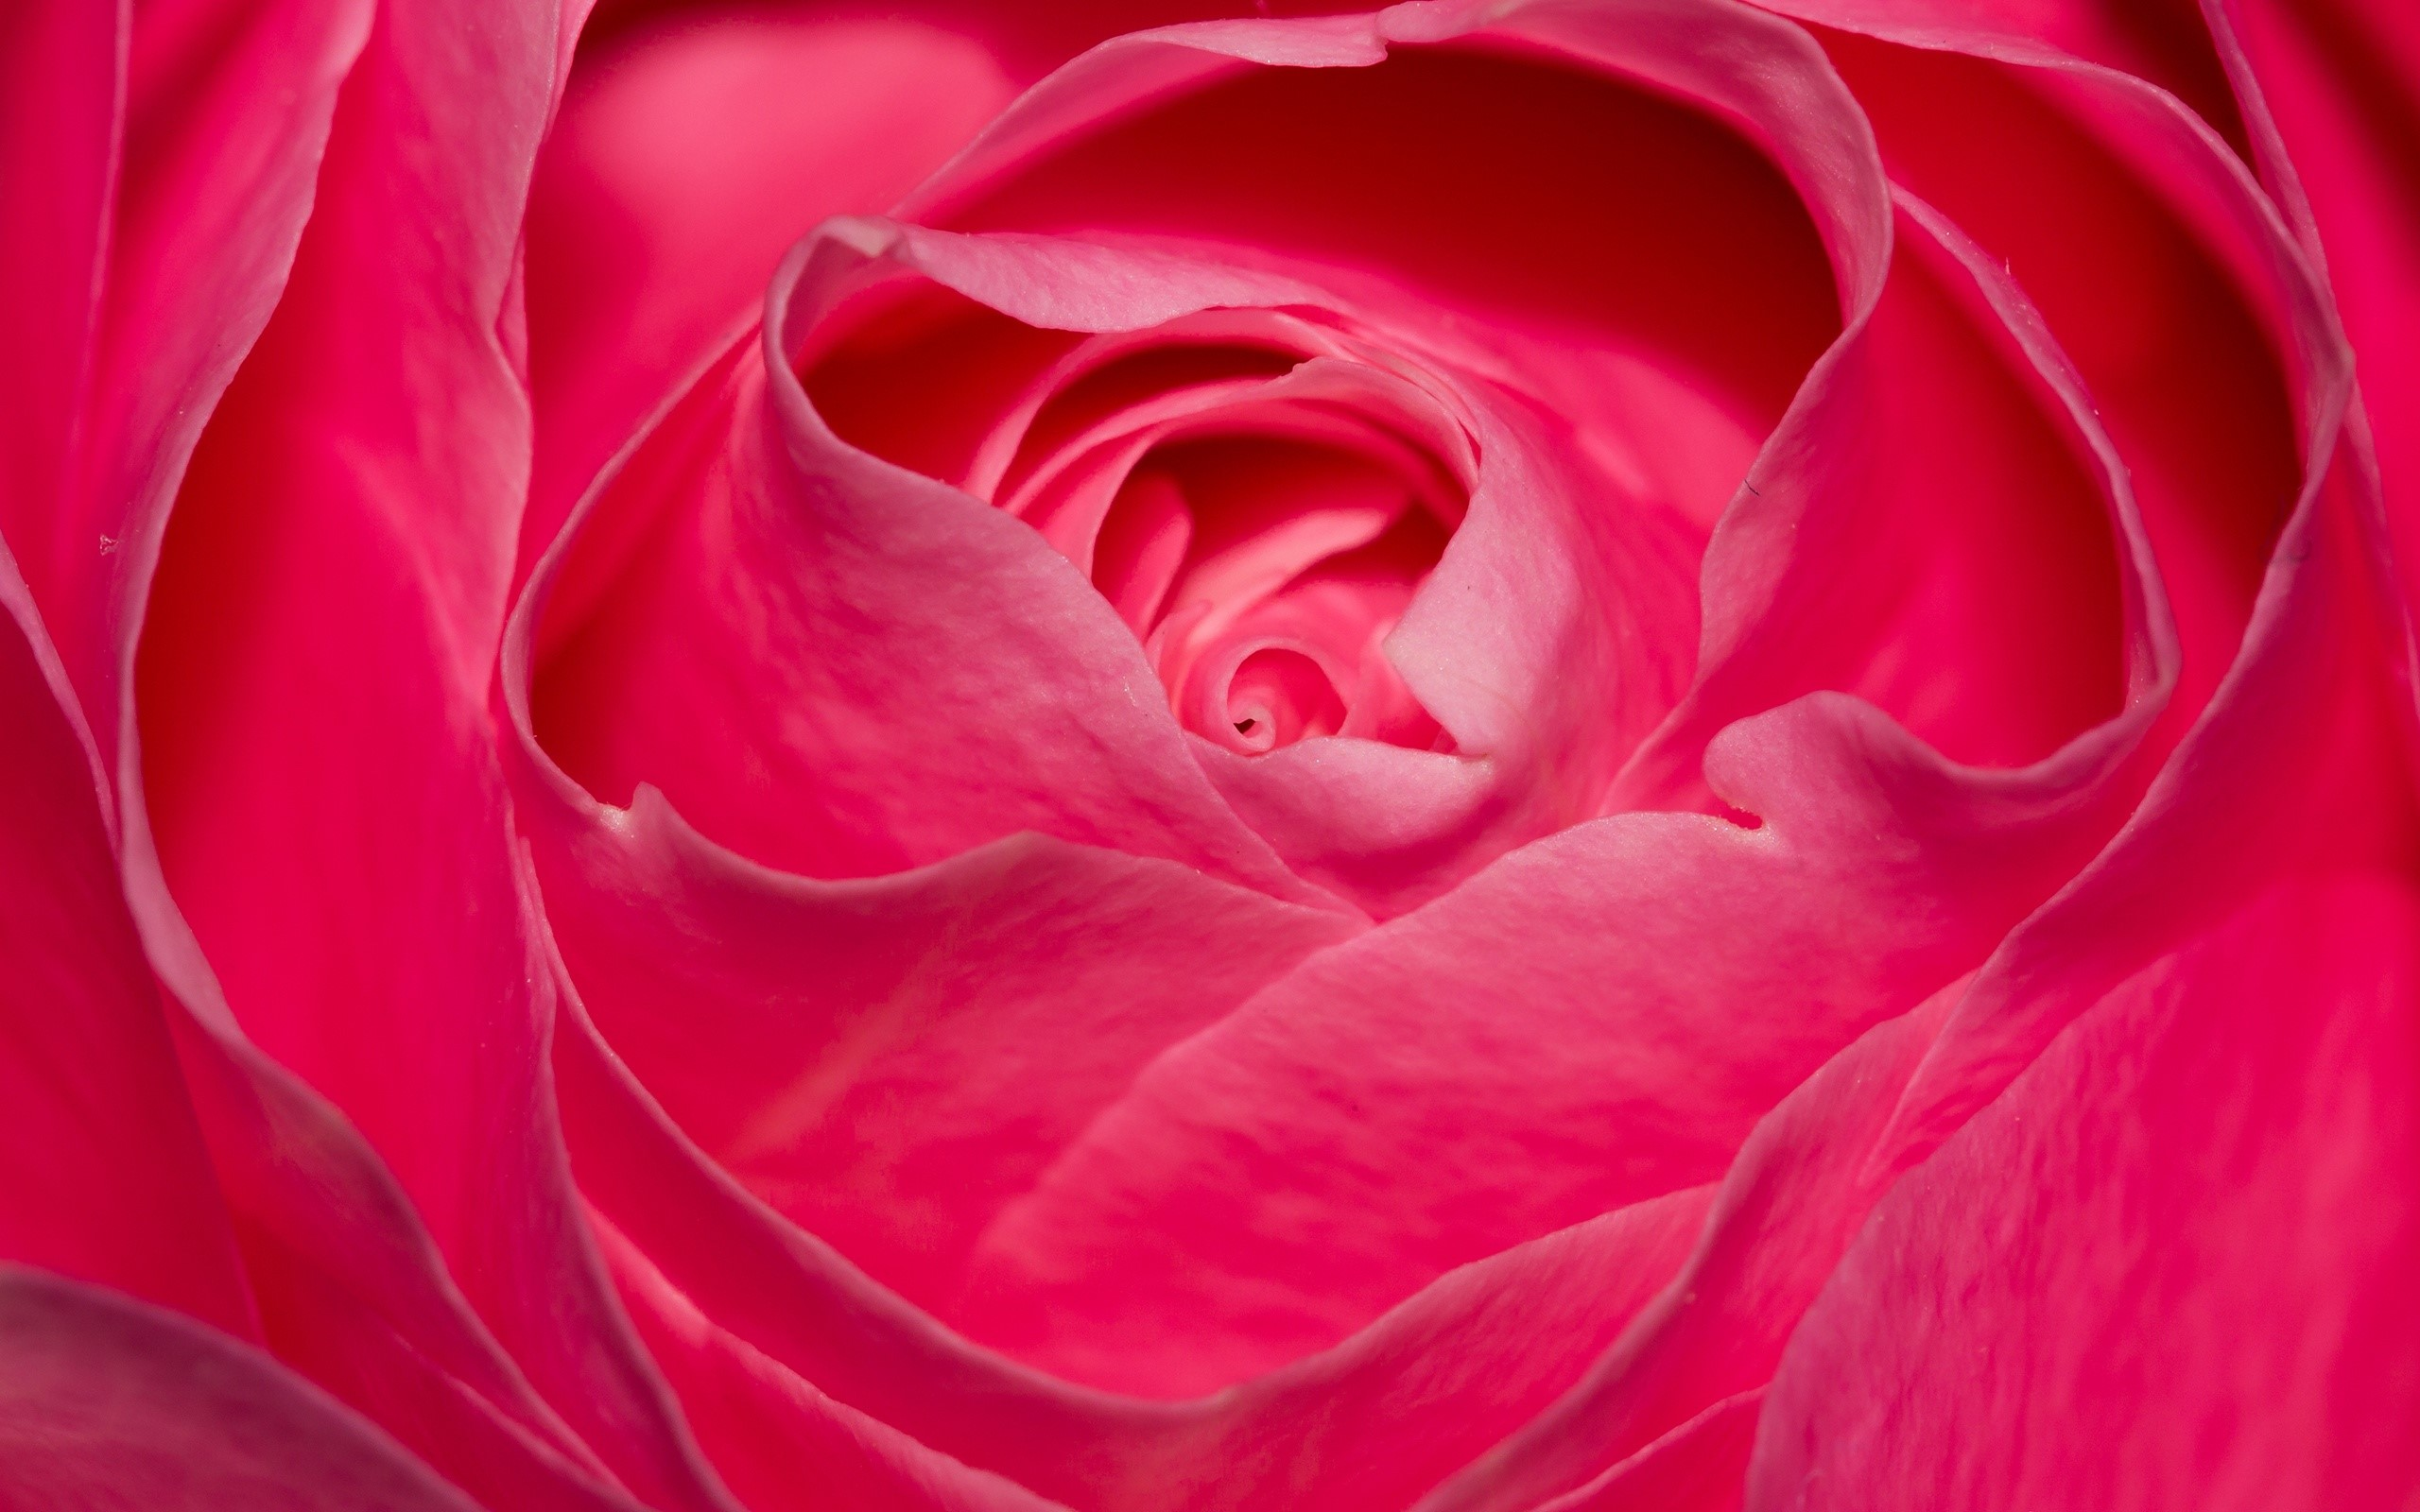 Wallpaper Rosa perfecta Images